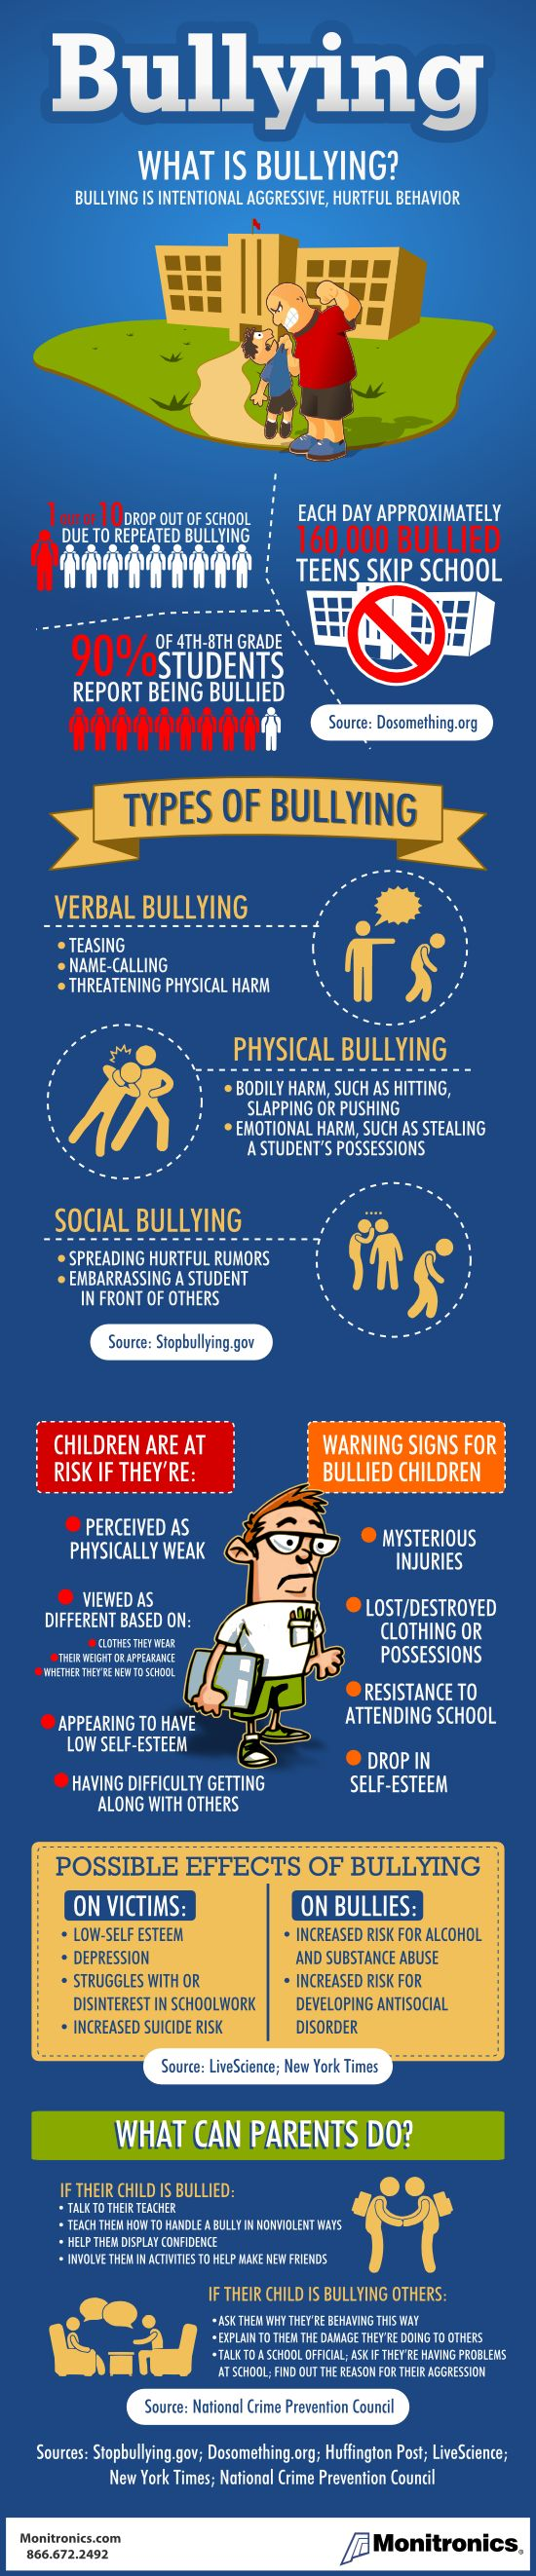 What Is Bullying? A very clear example of how bullying occurs, statistics on students effected, and the various types of bullying that occurs.